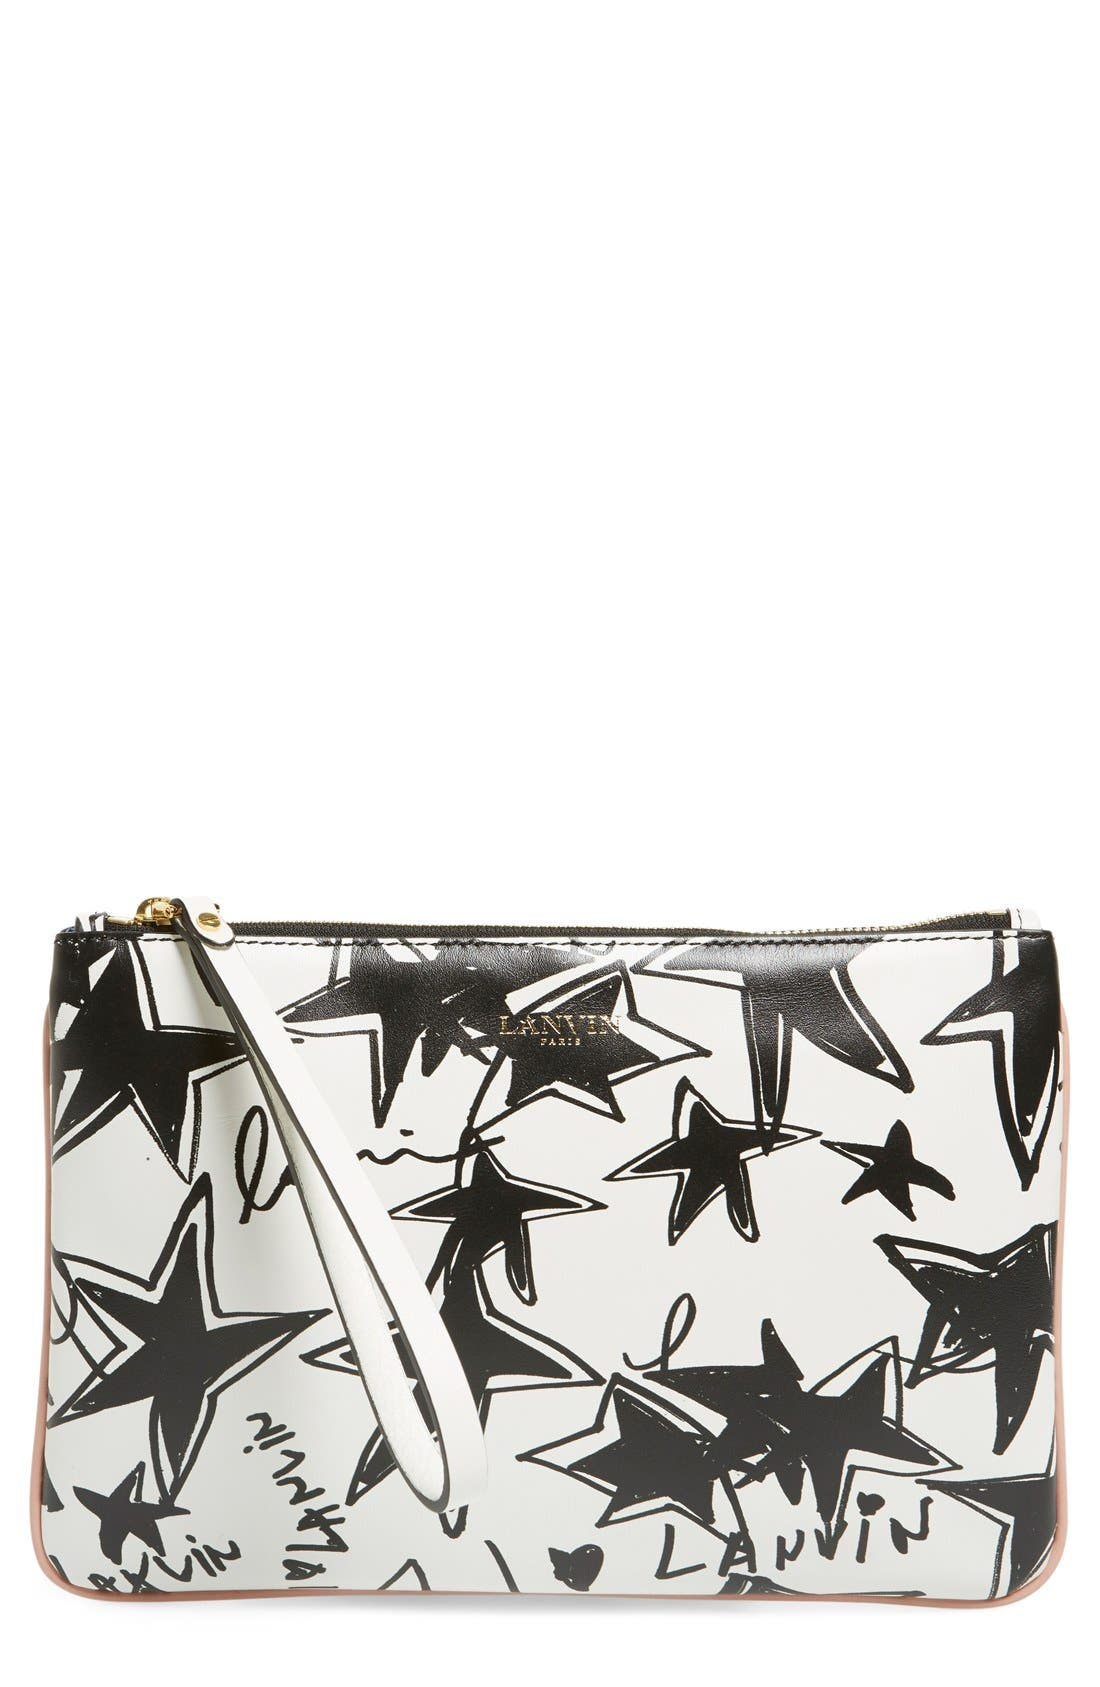 Alternate Image 1 Selected - Lanvin 'Small' Print Calfskin Clutch